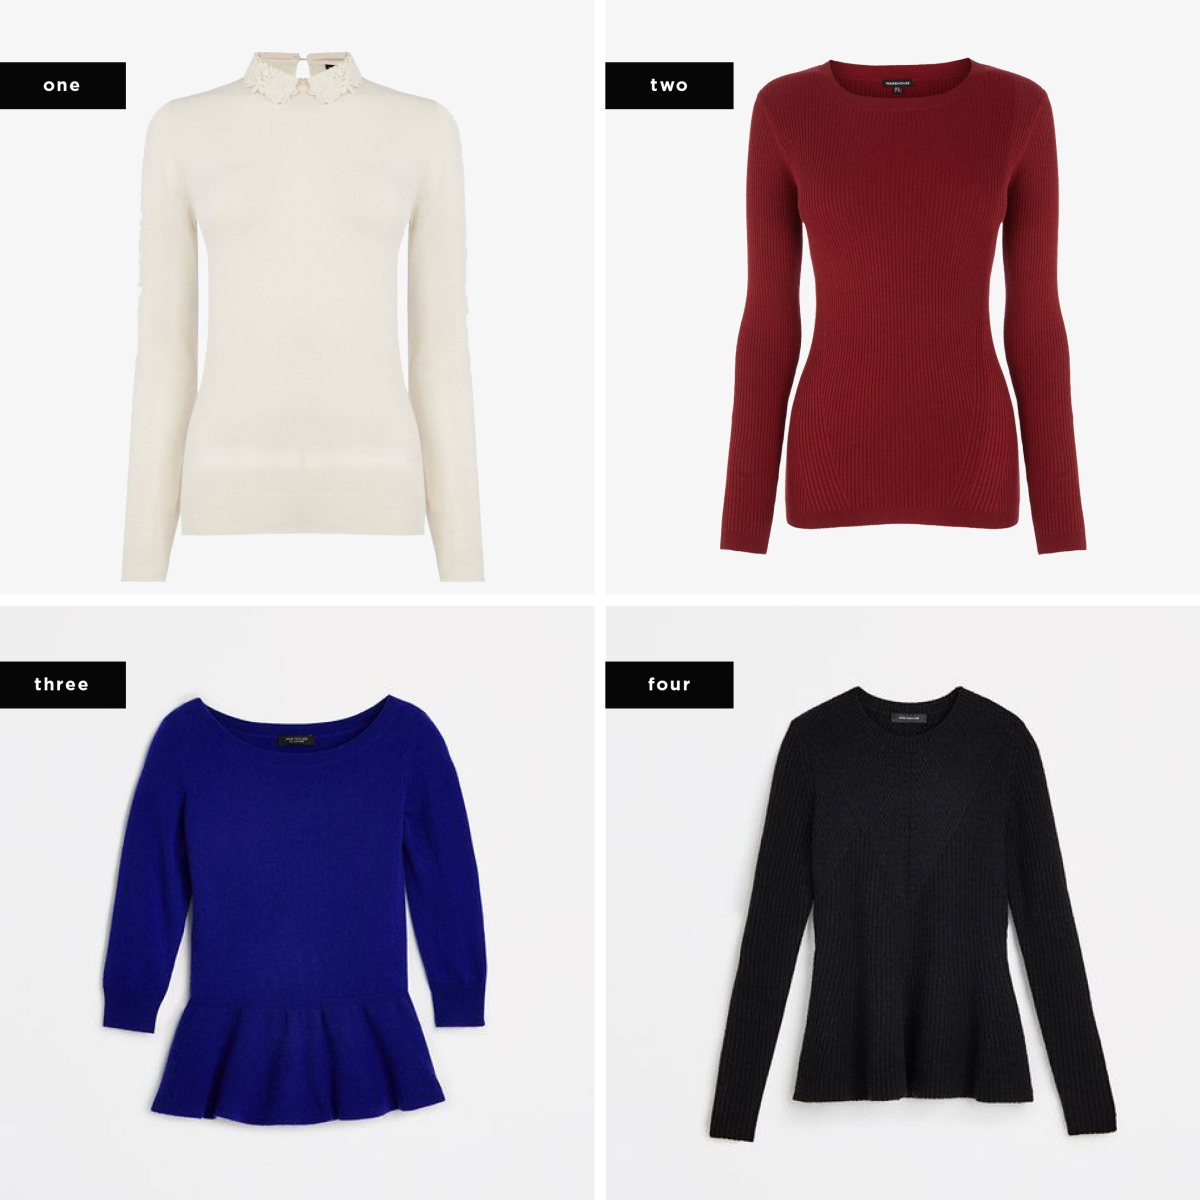 1. Warehouse, $71 / 2. Warehouse, $45 / 3. Ann Taylor, $198 / 4. Ann Taylor, $98